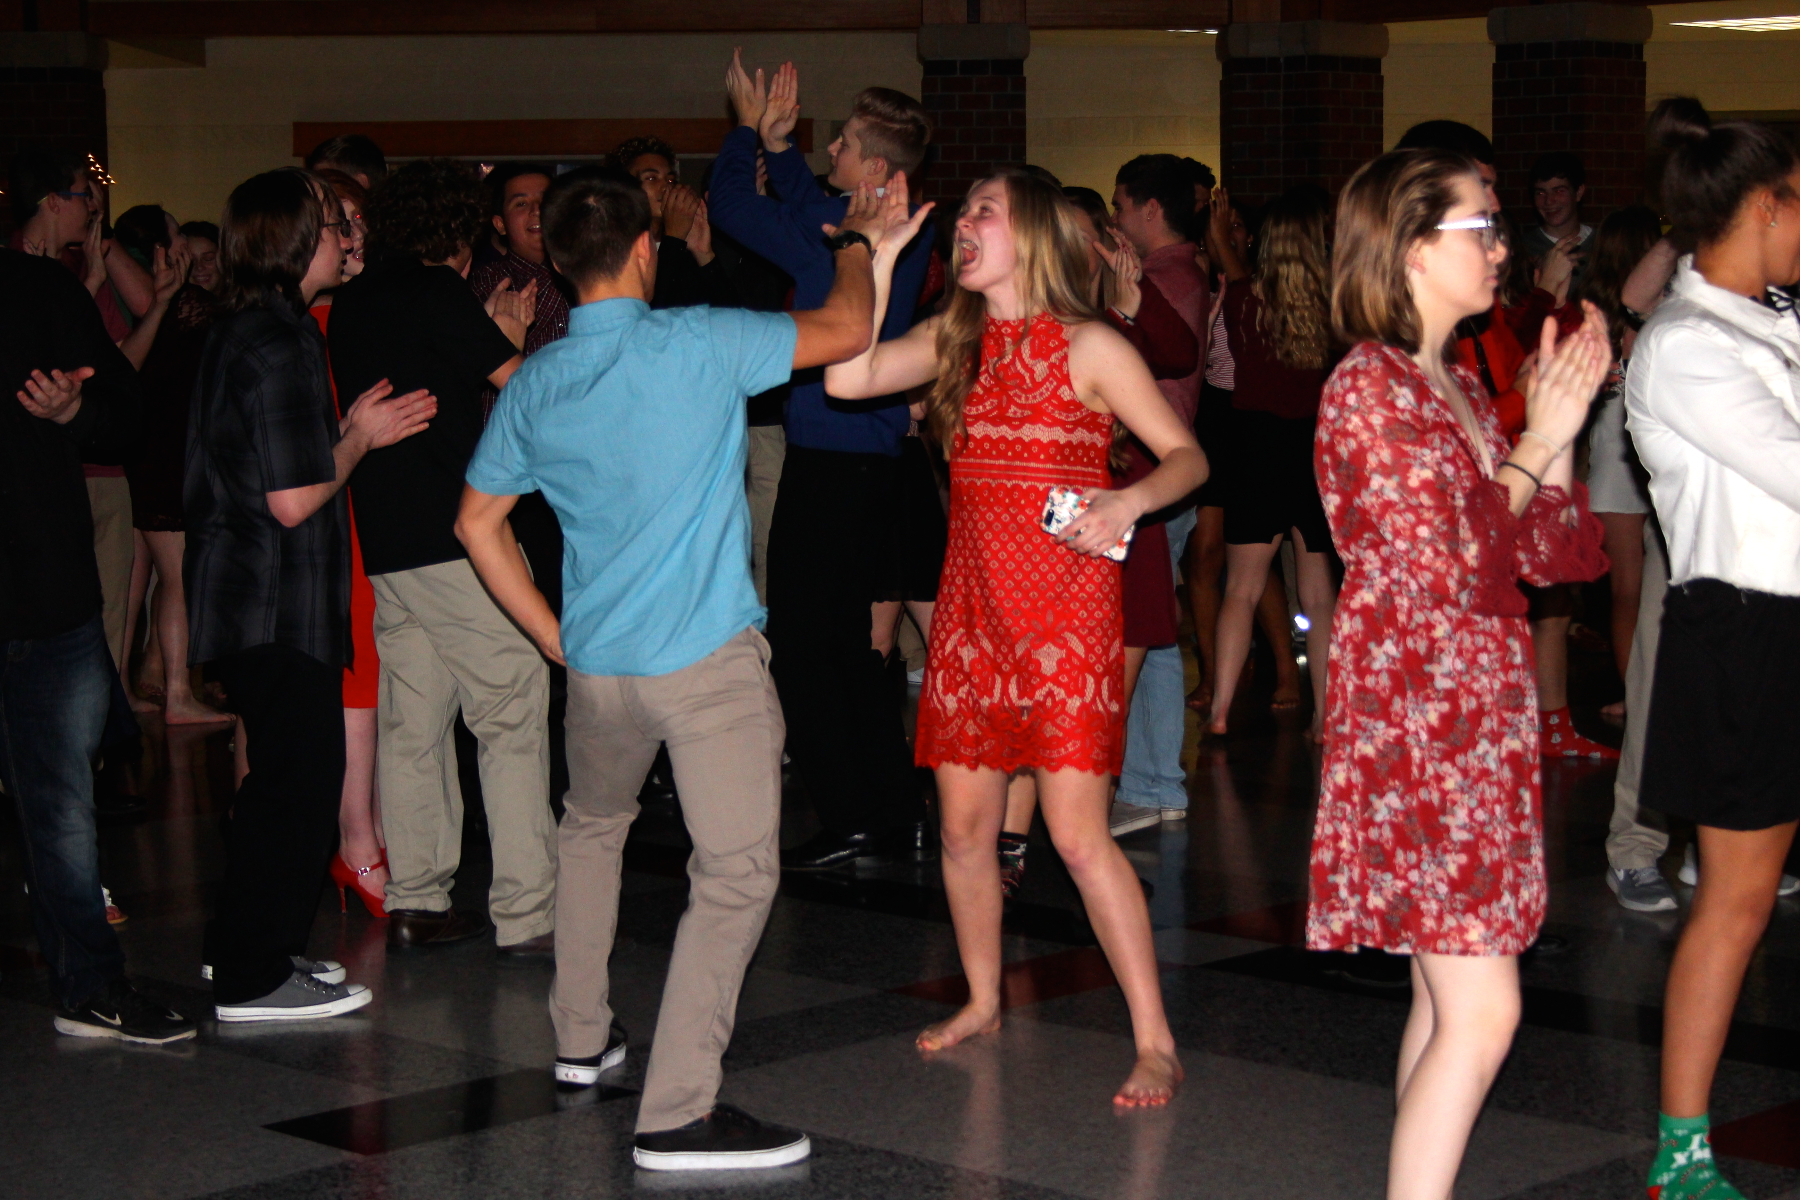 NHS Winter Formal Dance 2017